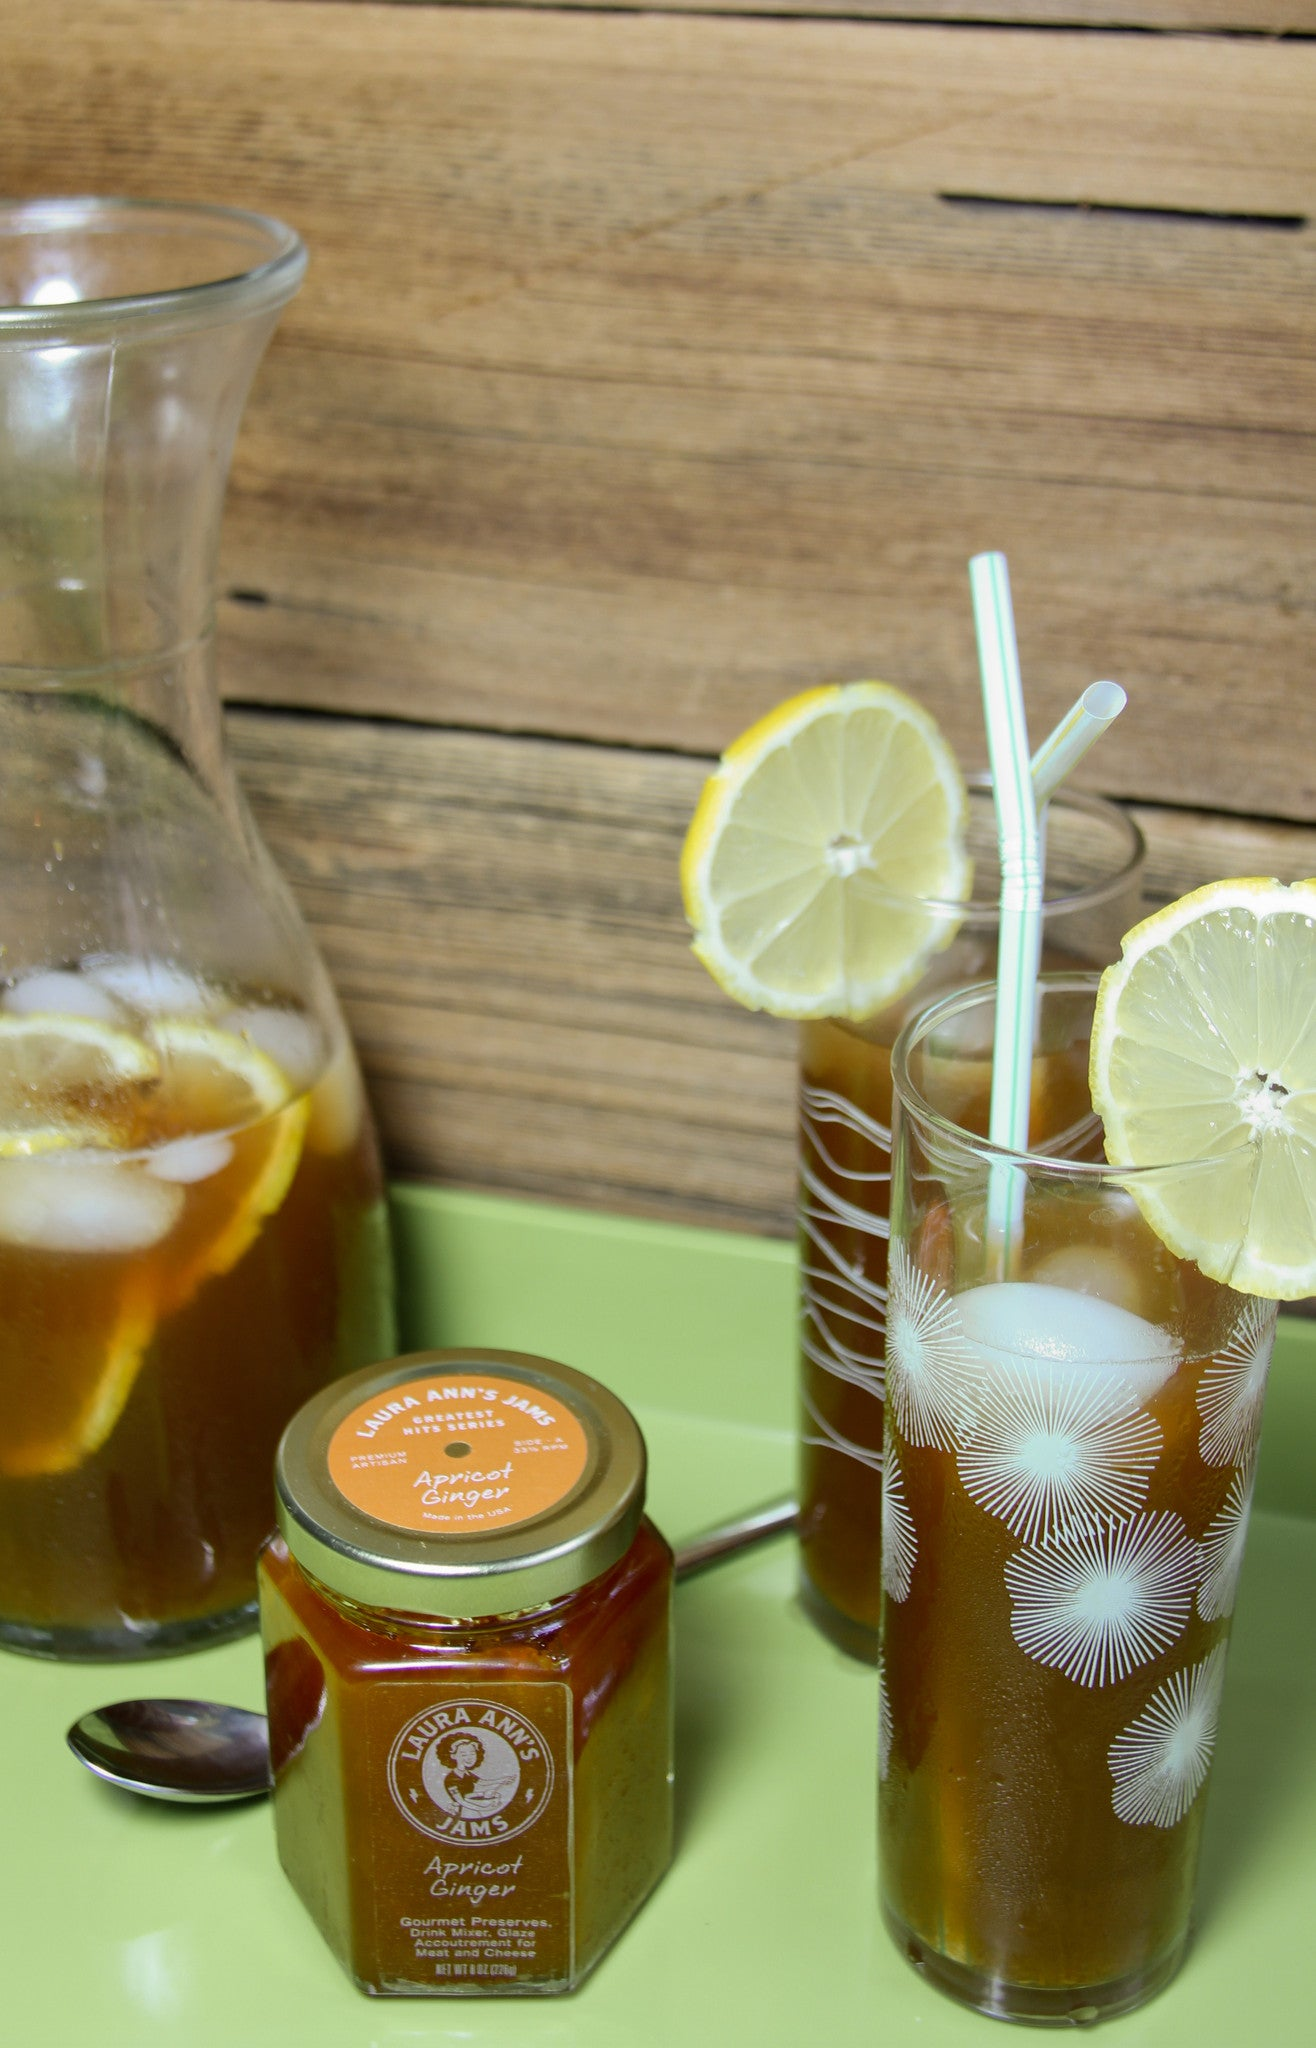 Apricot Ginger Iced Sweet Tea